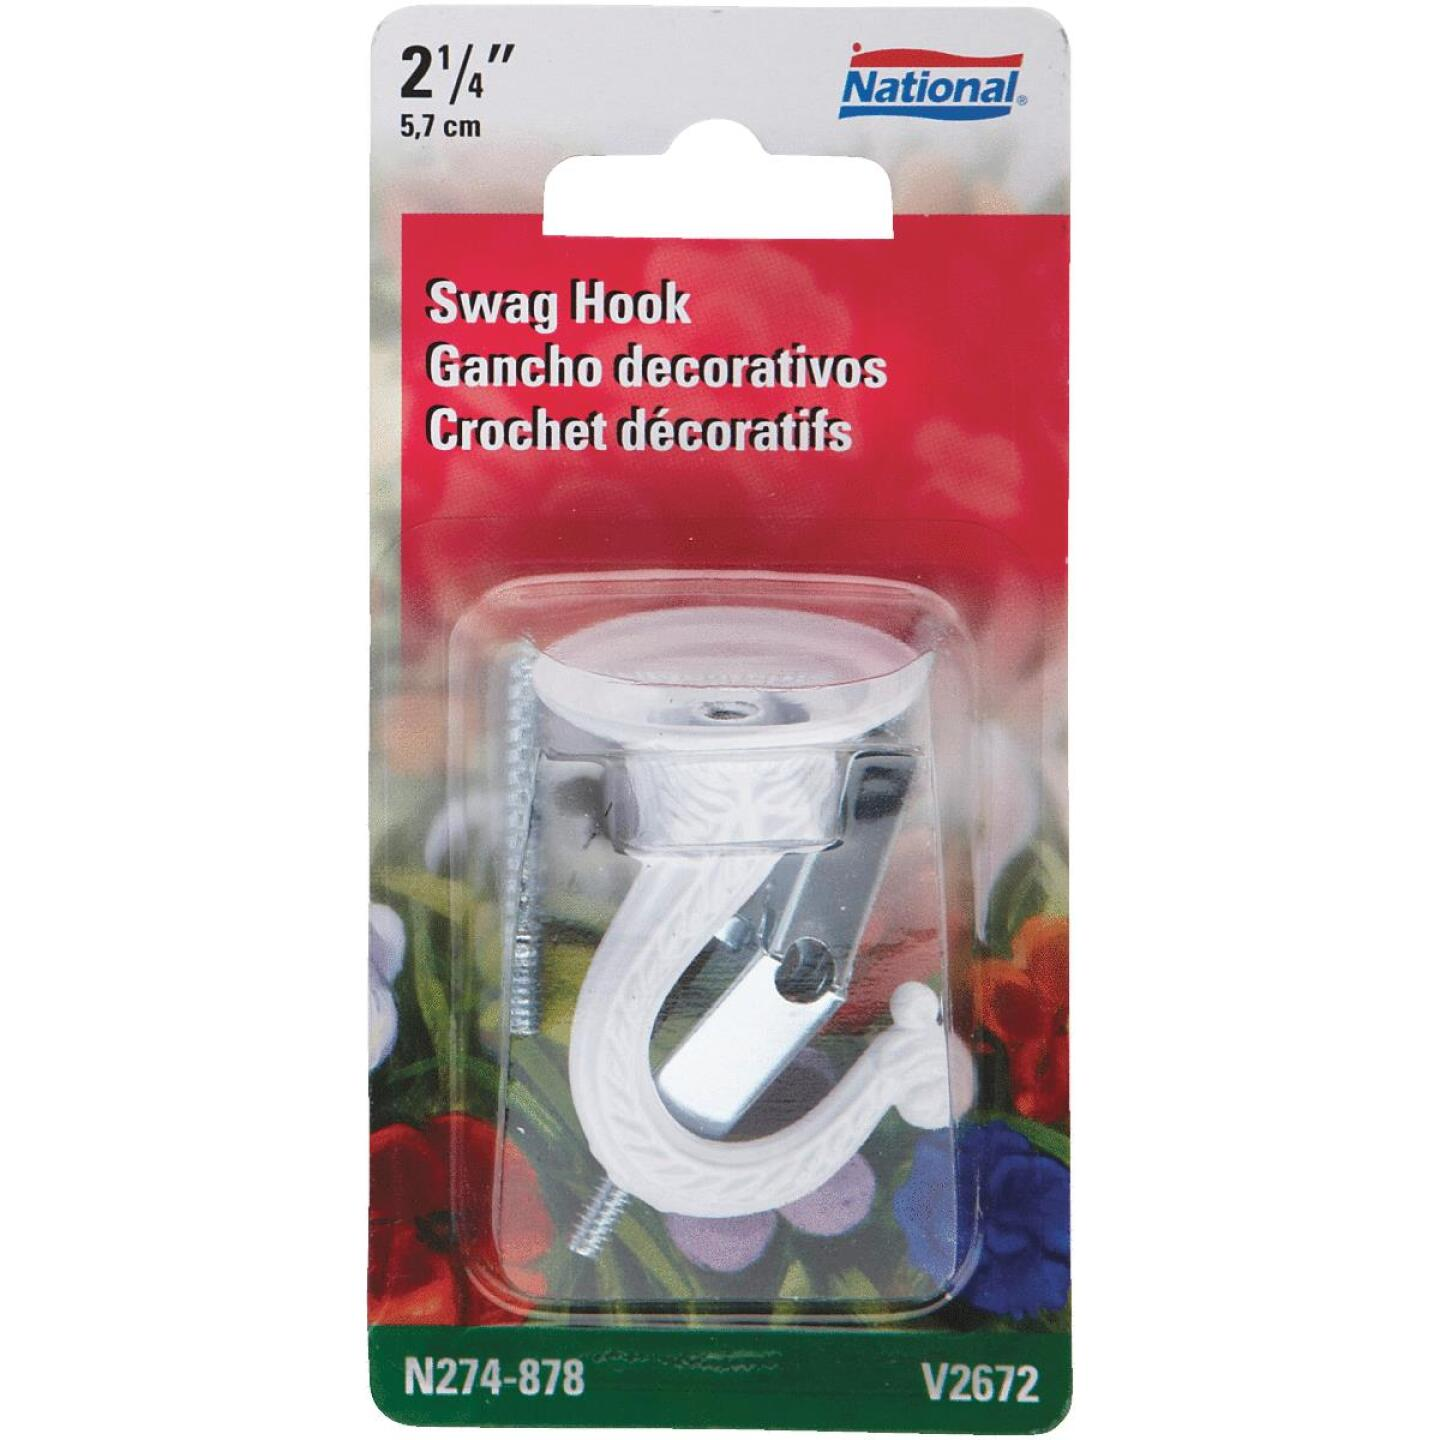 National 2-1/4 In. White Die Cast Swag Hook Image 2